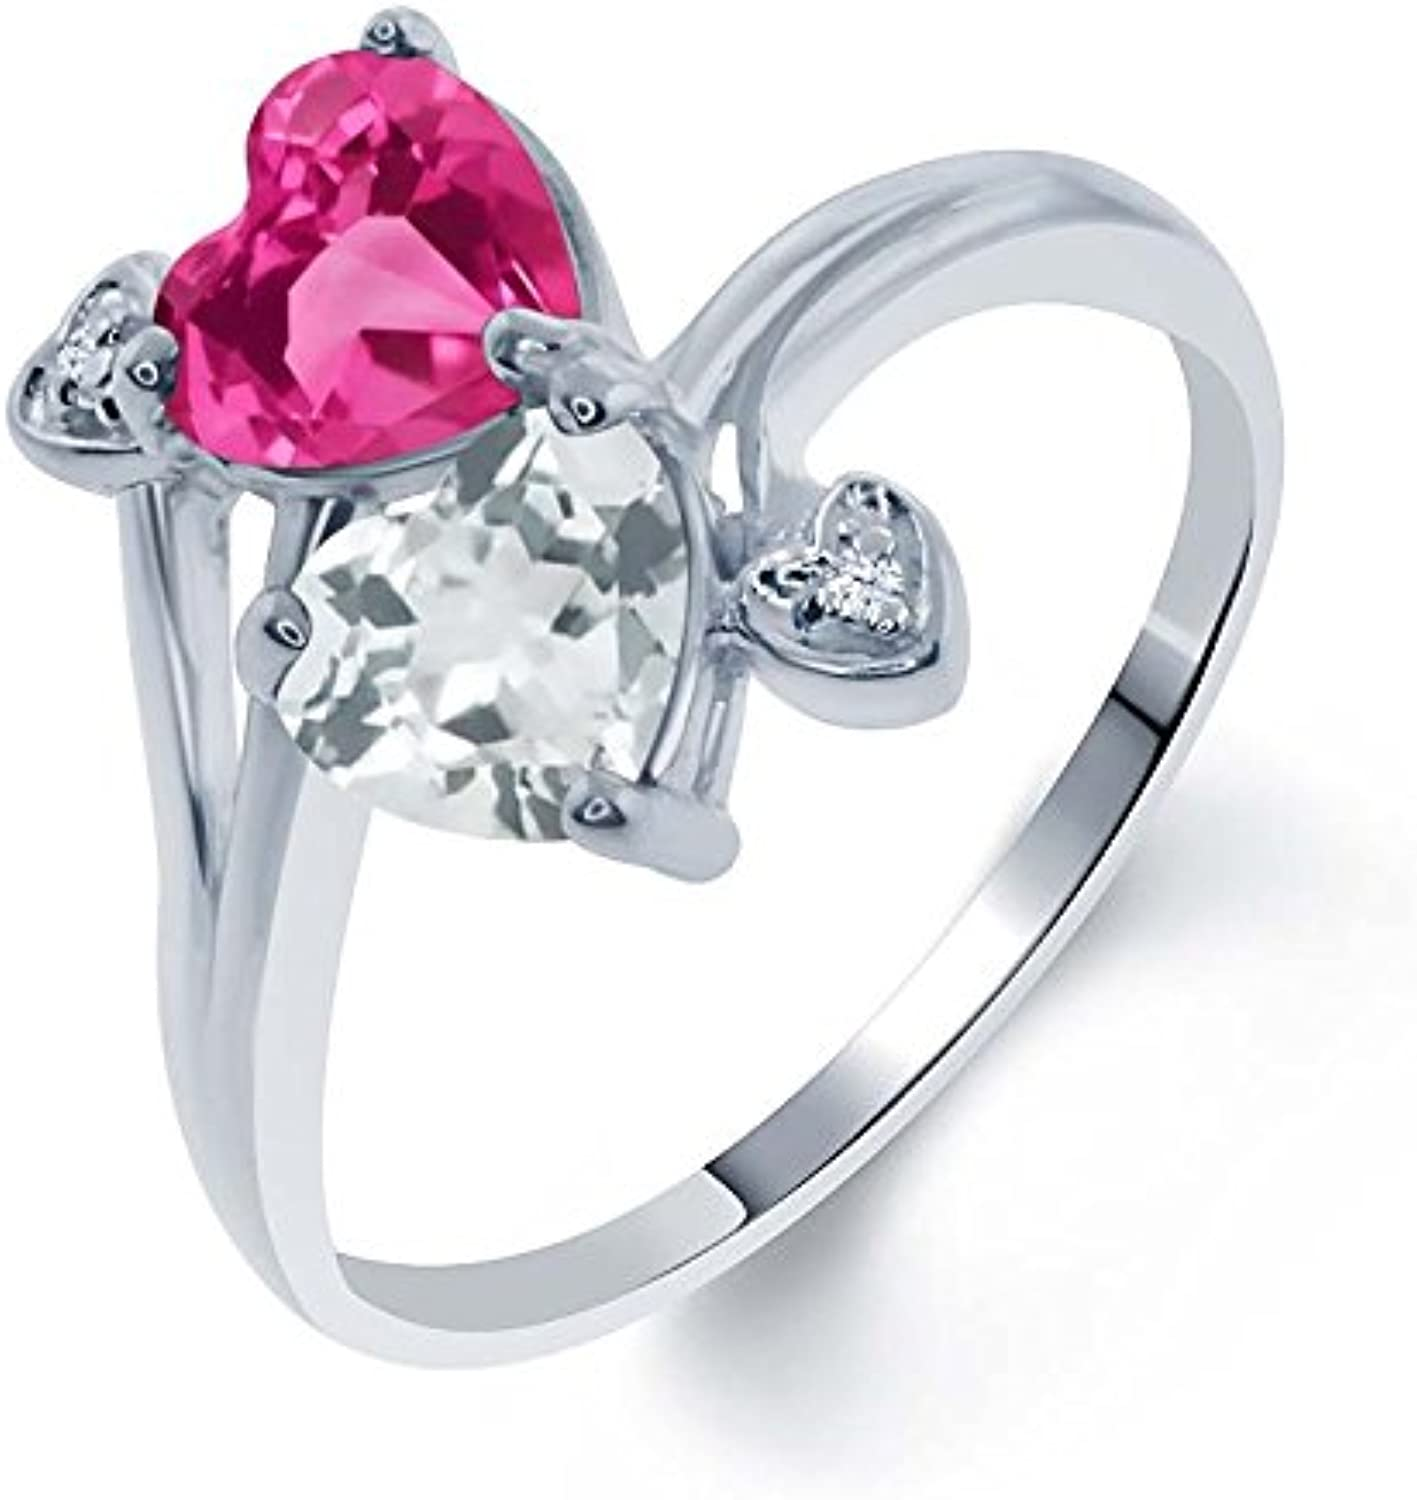 1.78 Ct Heart Shape Pink Created Sapphire Sky bluee Topaz 925 Silver Ring